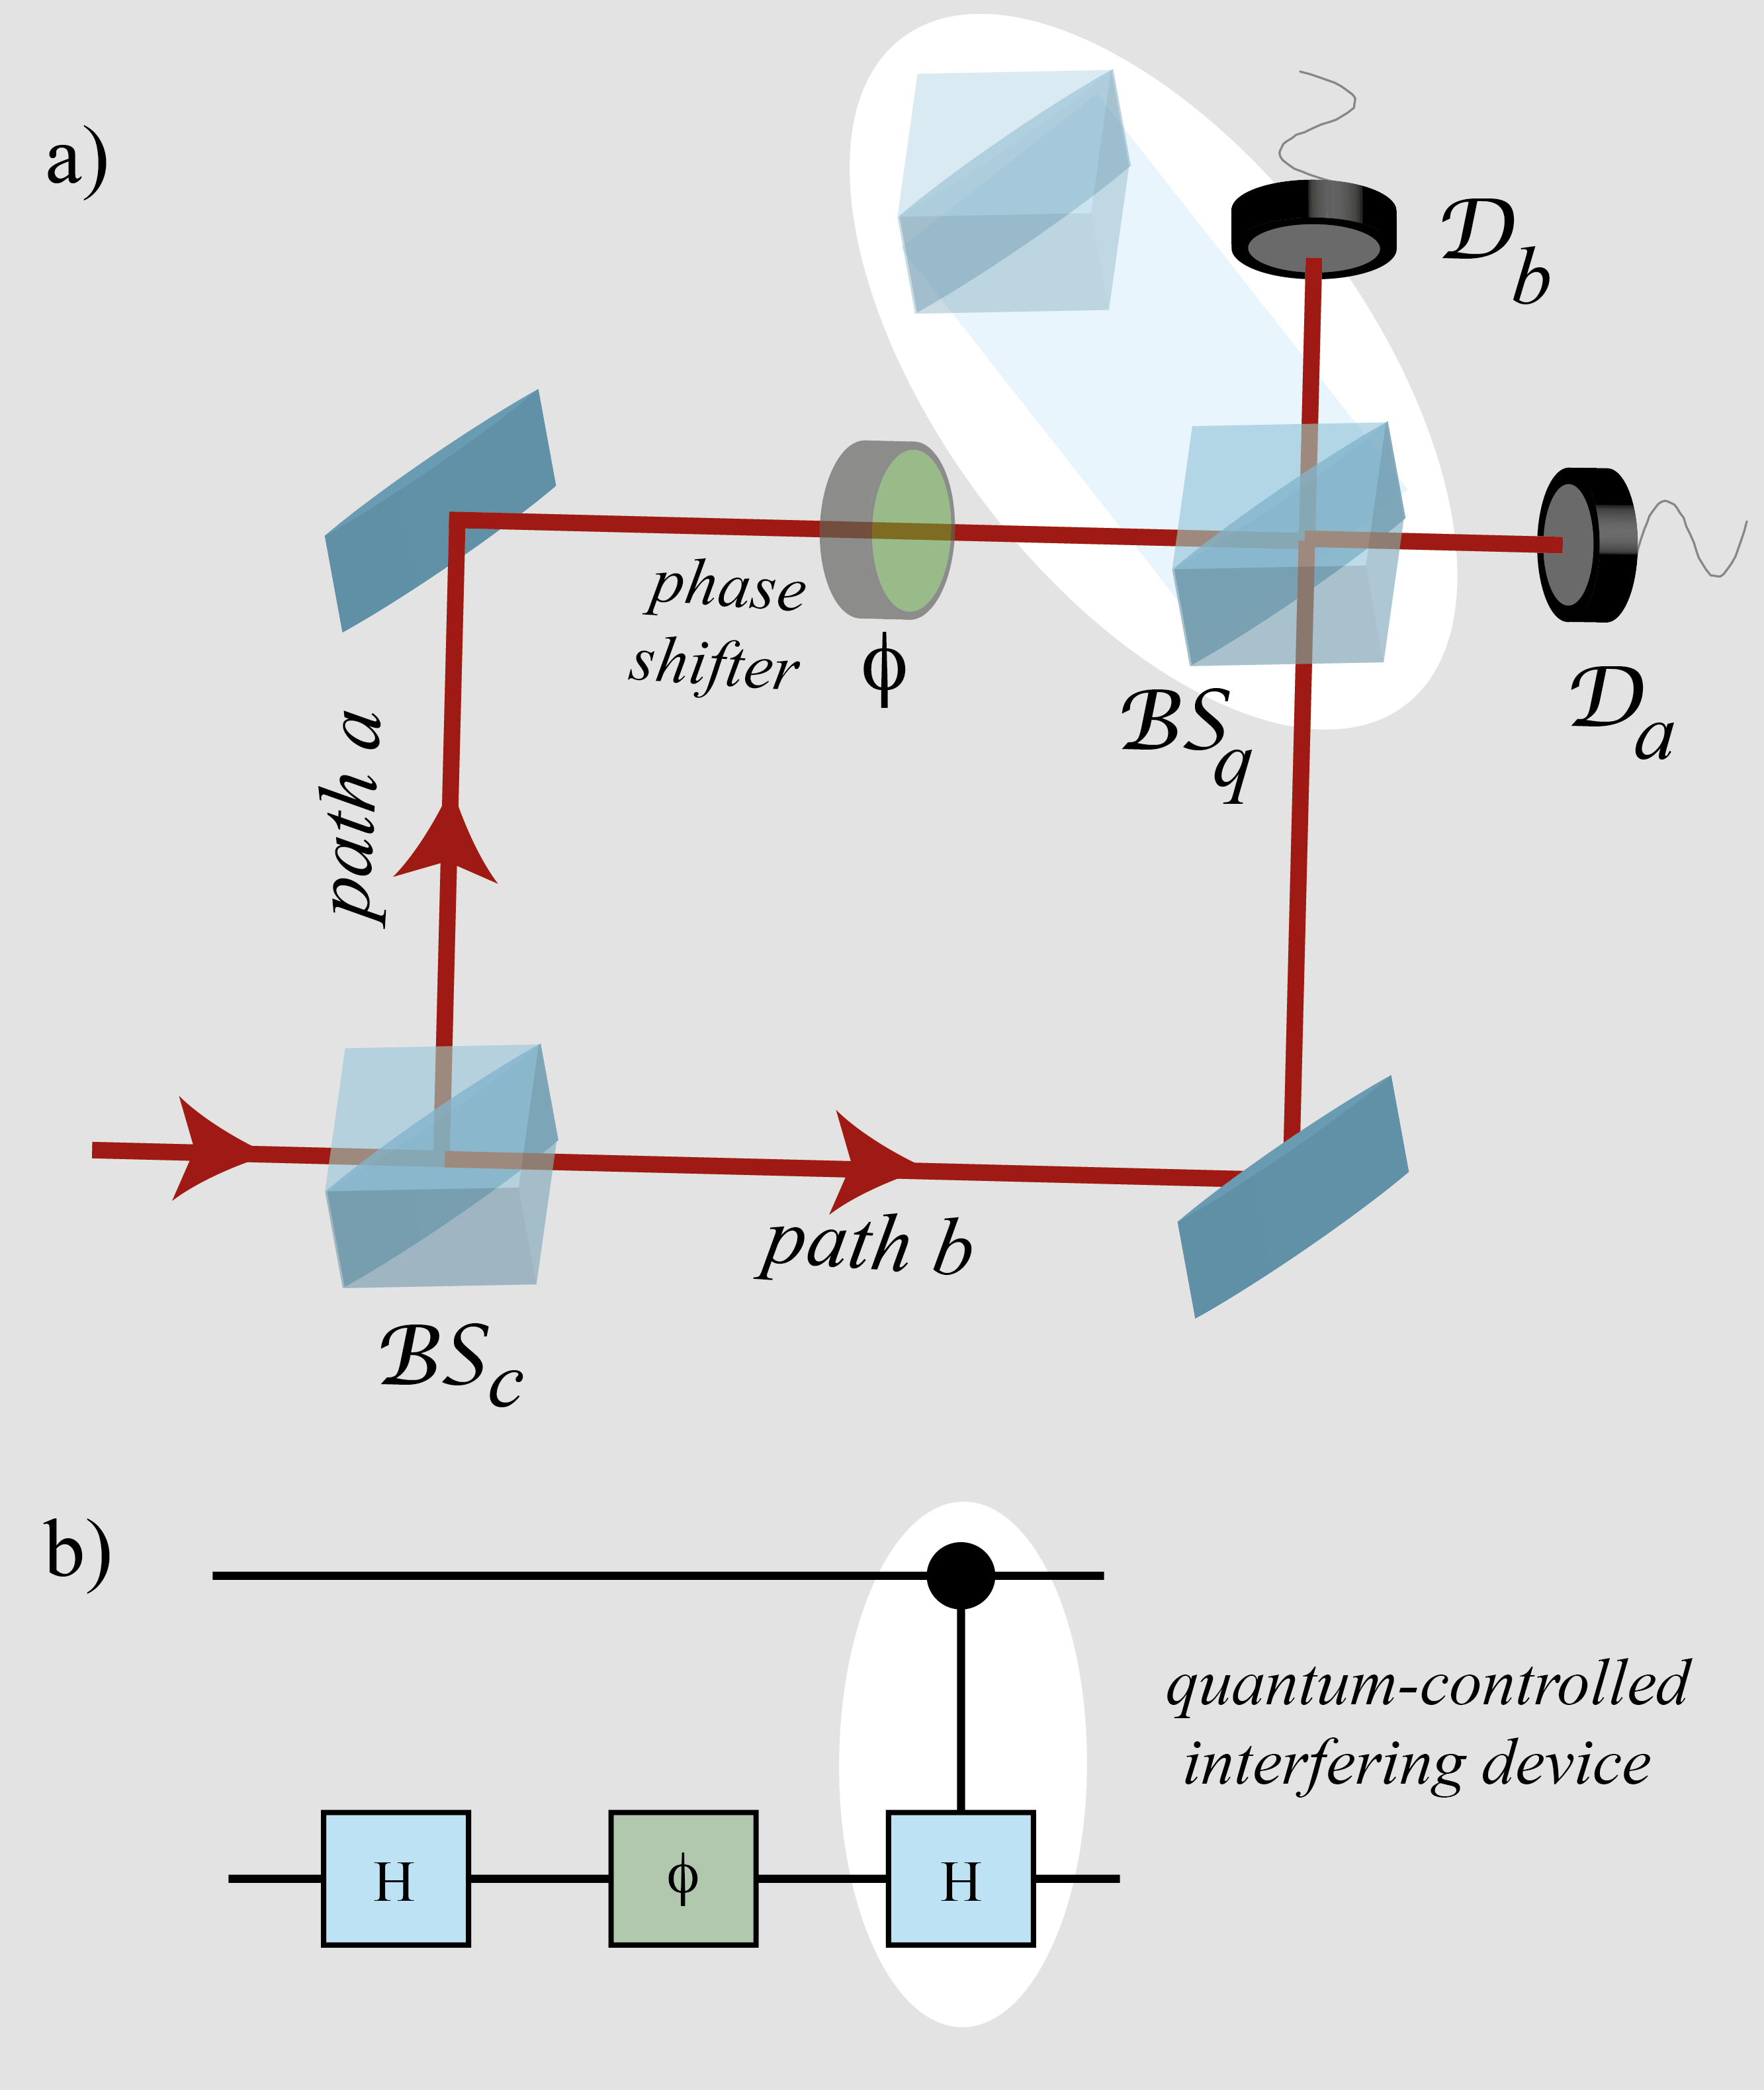 (a) Schematic diagram of the Mach-Zehnder interferometer with a